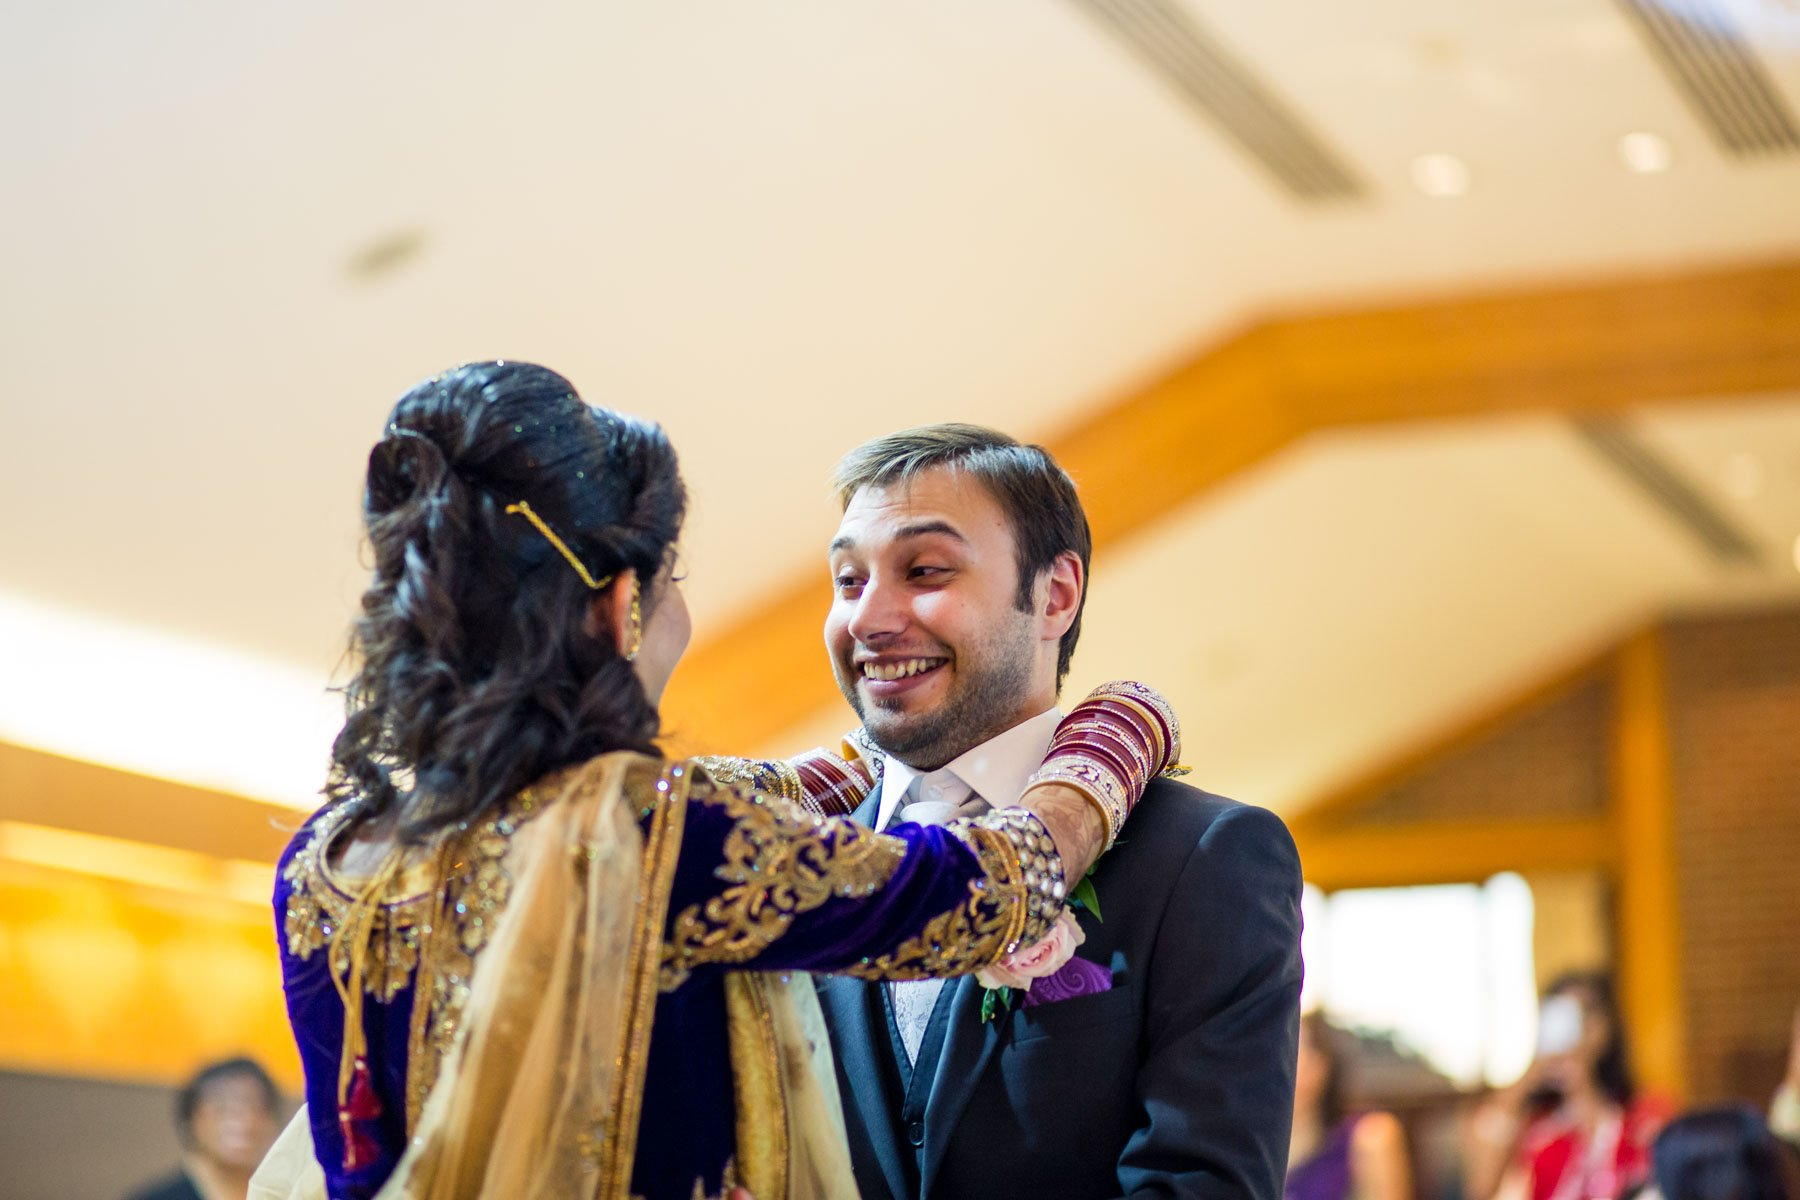 Surrey asian wedding photographer, Surrey National Golf Club